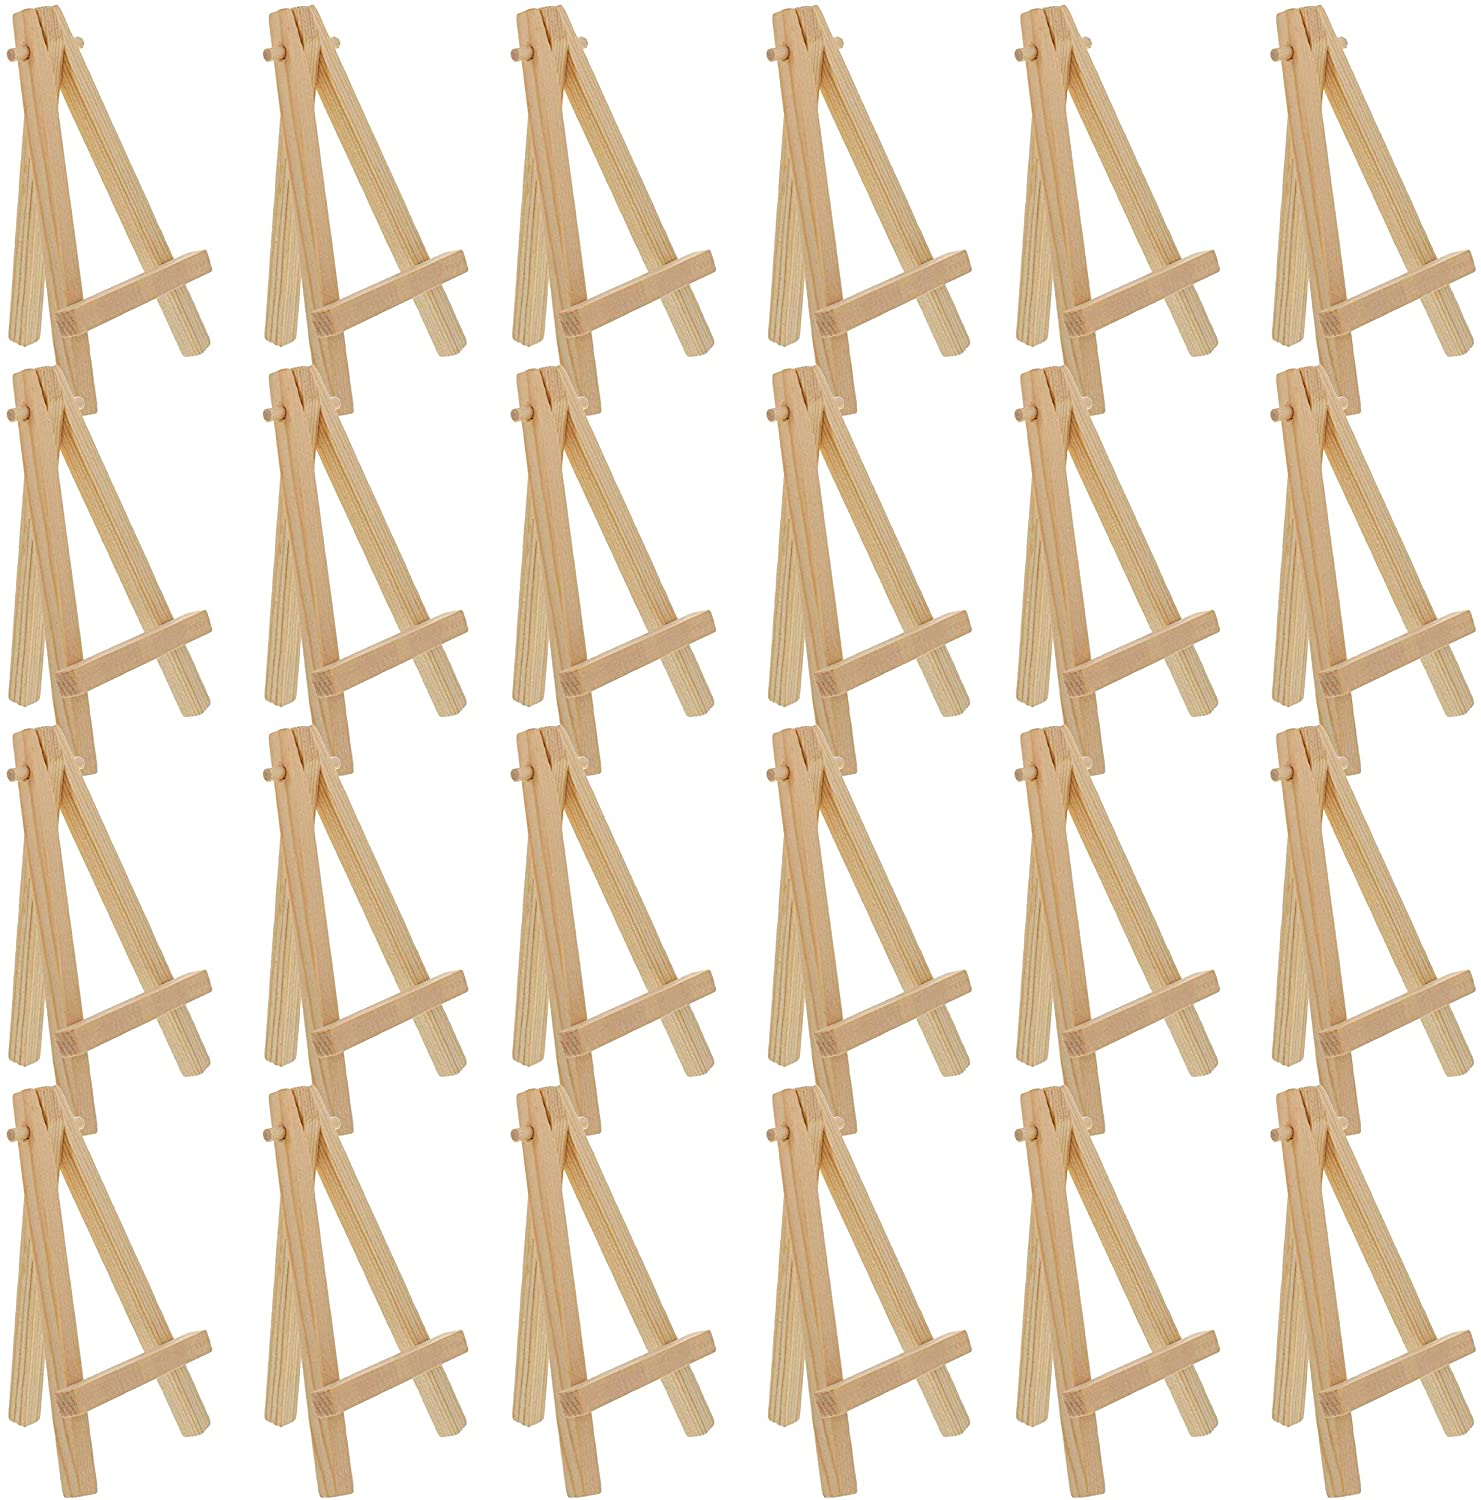 U.S. Art Supply 5 Mini Natural Wood Display Easel (Pack of 24), A-Frame Artist Painting Party Tripod Easel - Tabletop Holder Stand for Small Canvases, Kids Crafts, Business Cards, Signs, Photos, Gift